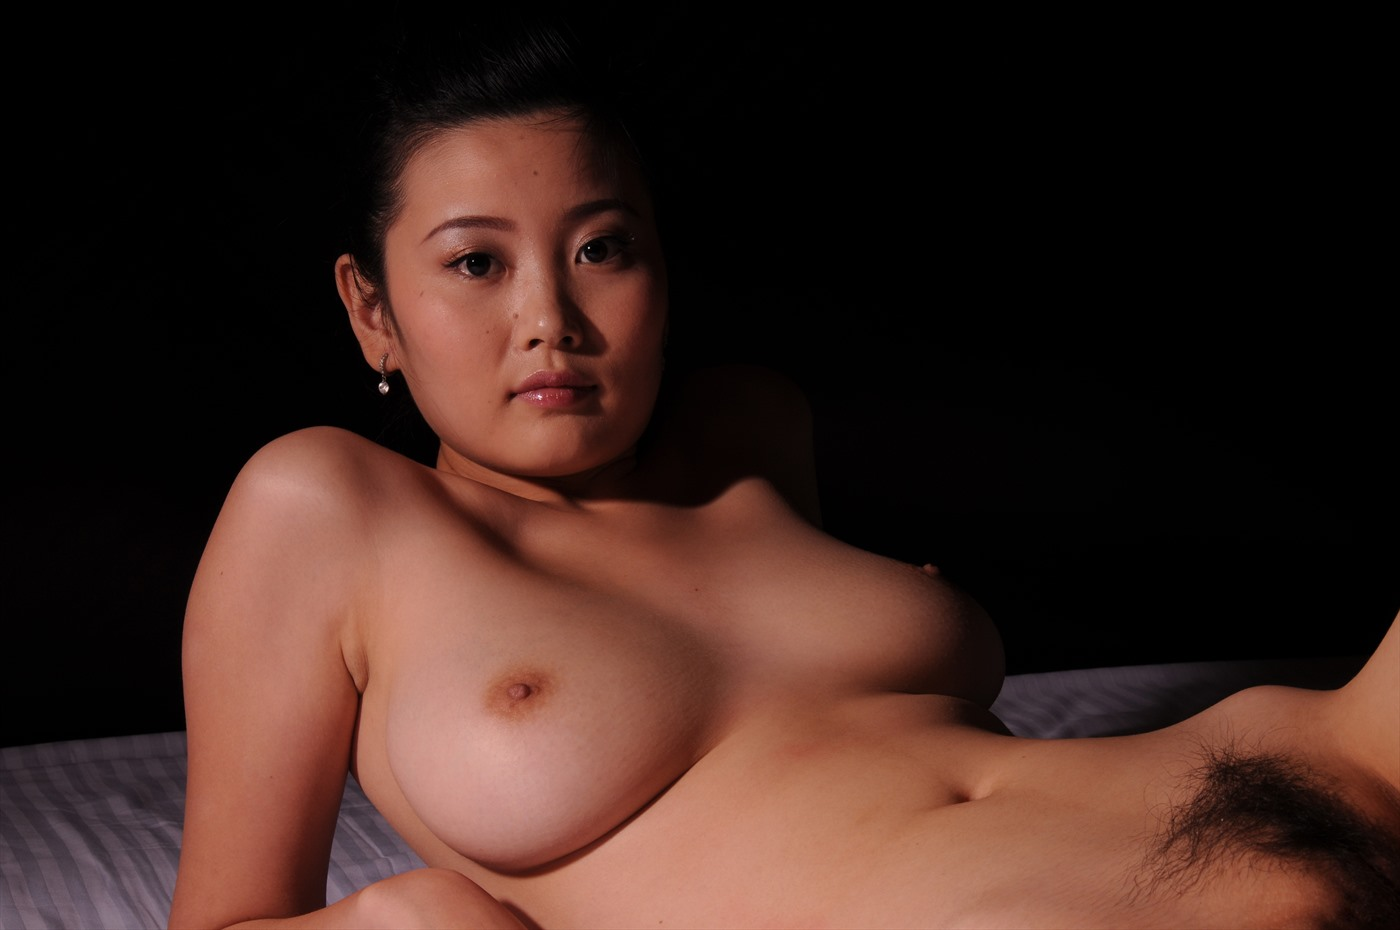 lady pussy yatou dsc 4550 free erotic pictures met nude